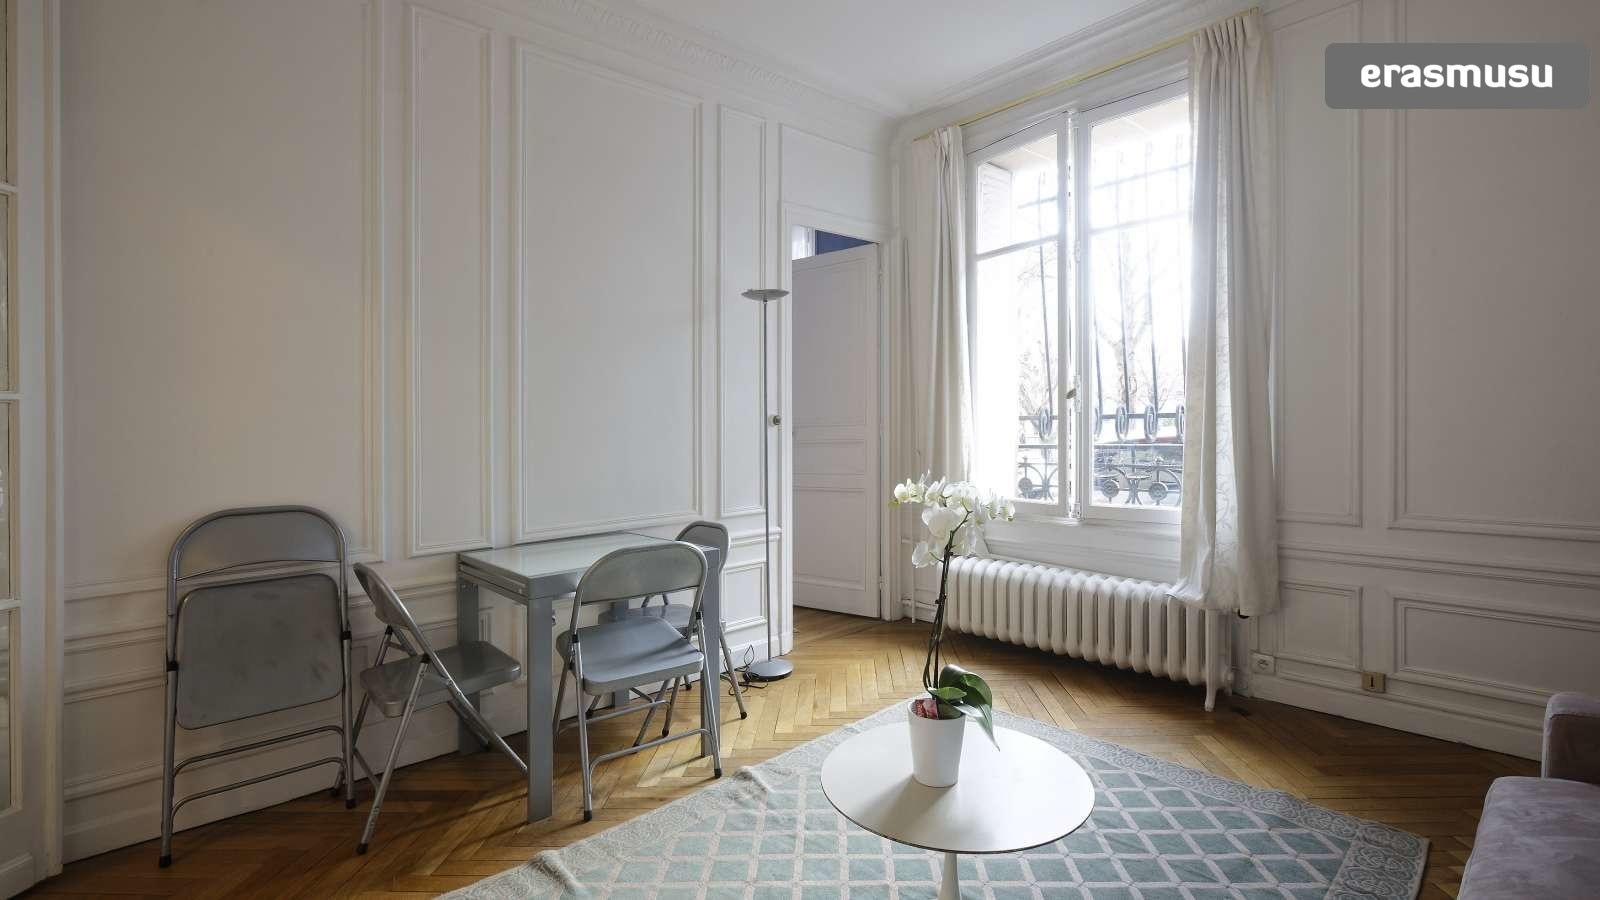 Elegant 1 Bedroom Apartment for Rent in Passy With Utilities Included